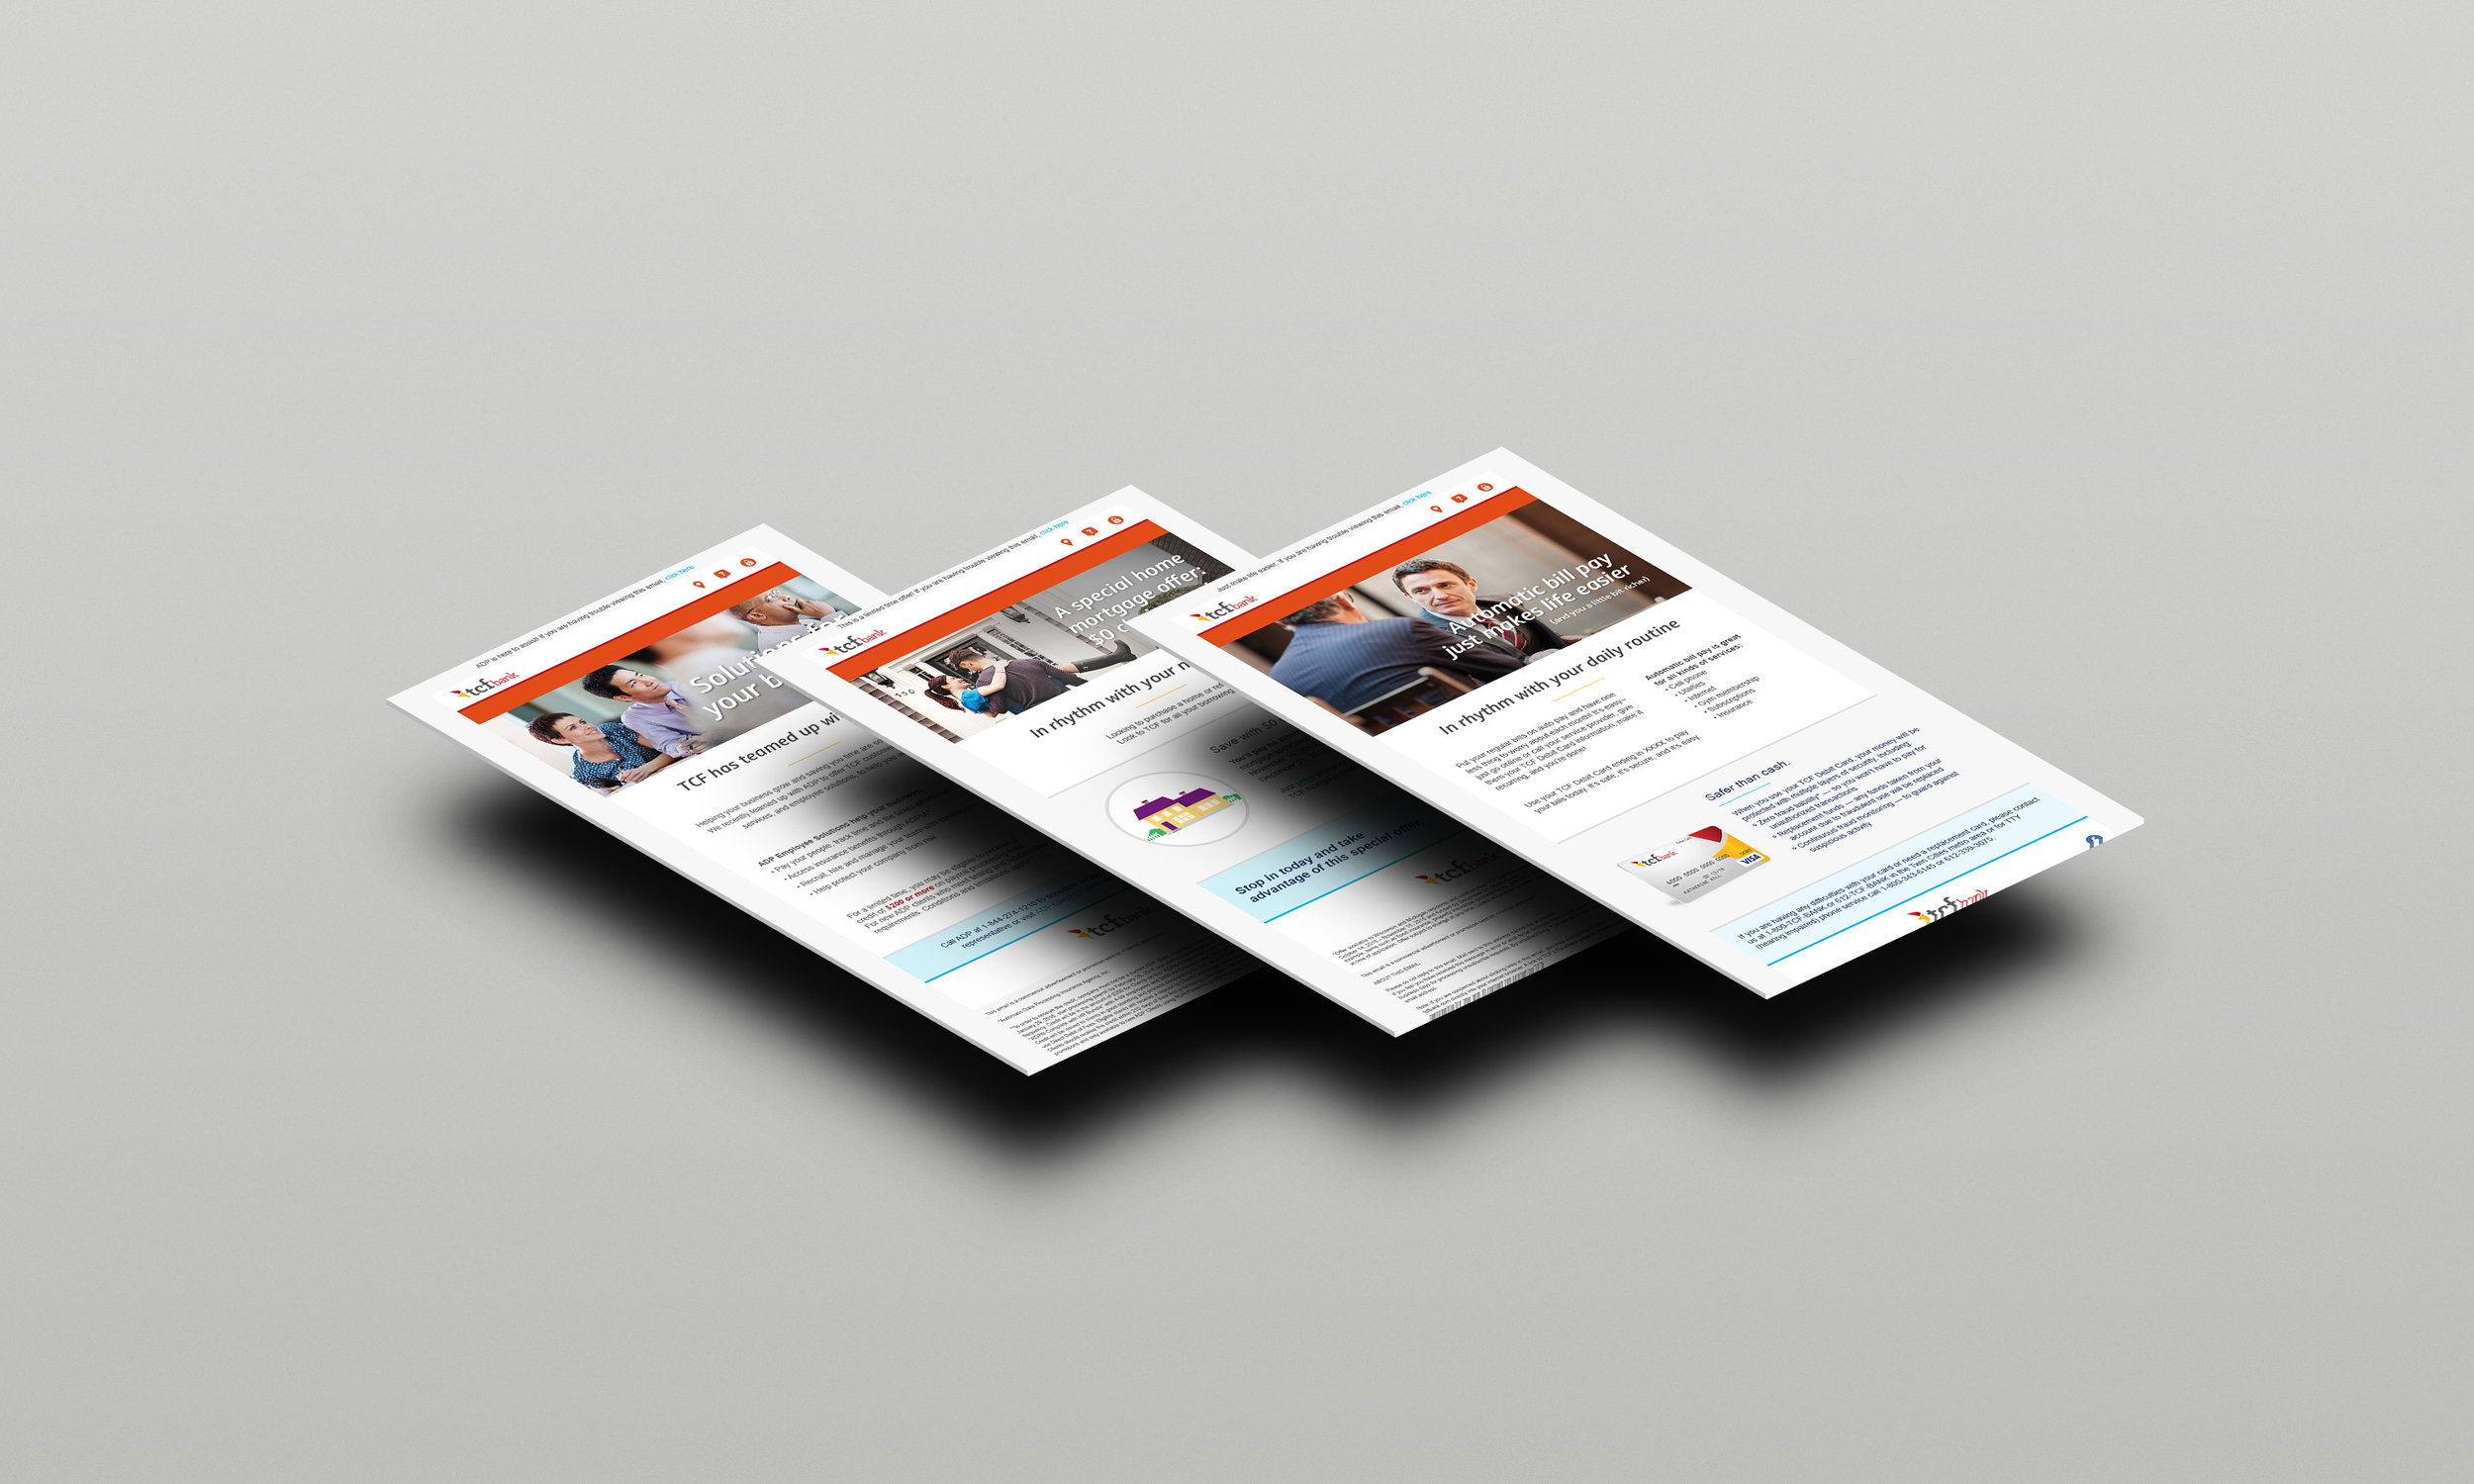 email_perspectivemockups_3000.jpg